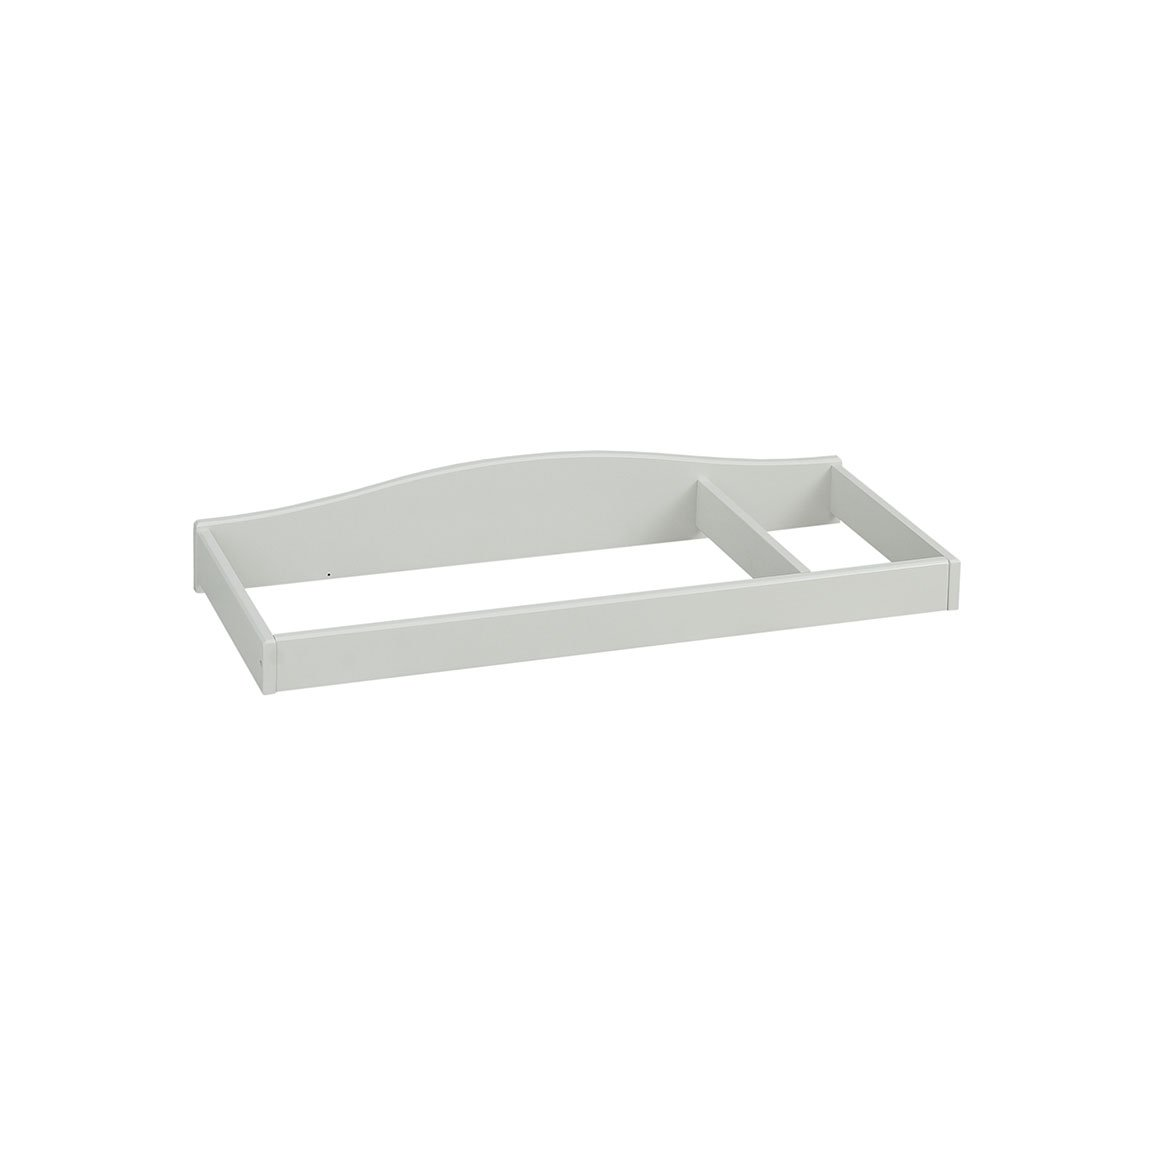 Baby Cache Natural Hardwood Changing Station Table Topper | Montana Collection | Kiln-dried & Hand-Crafted Construction | Glazed White